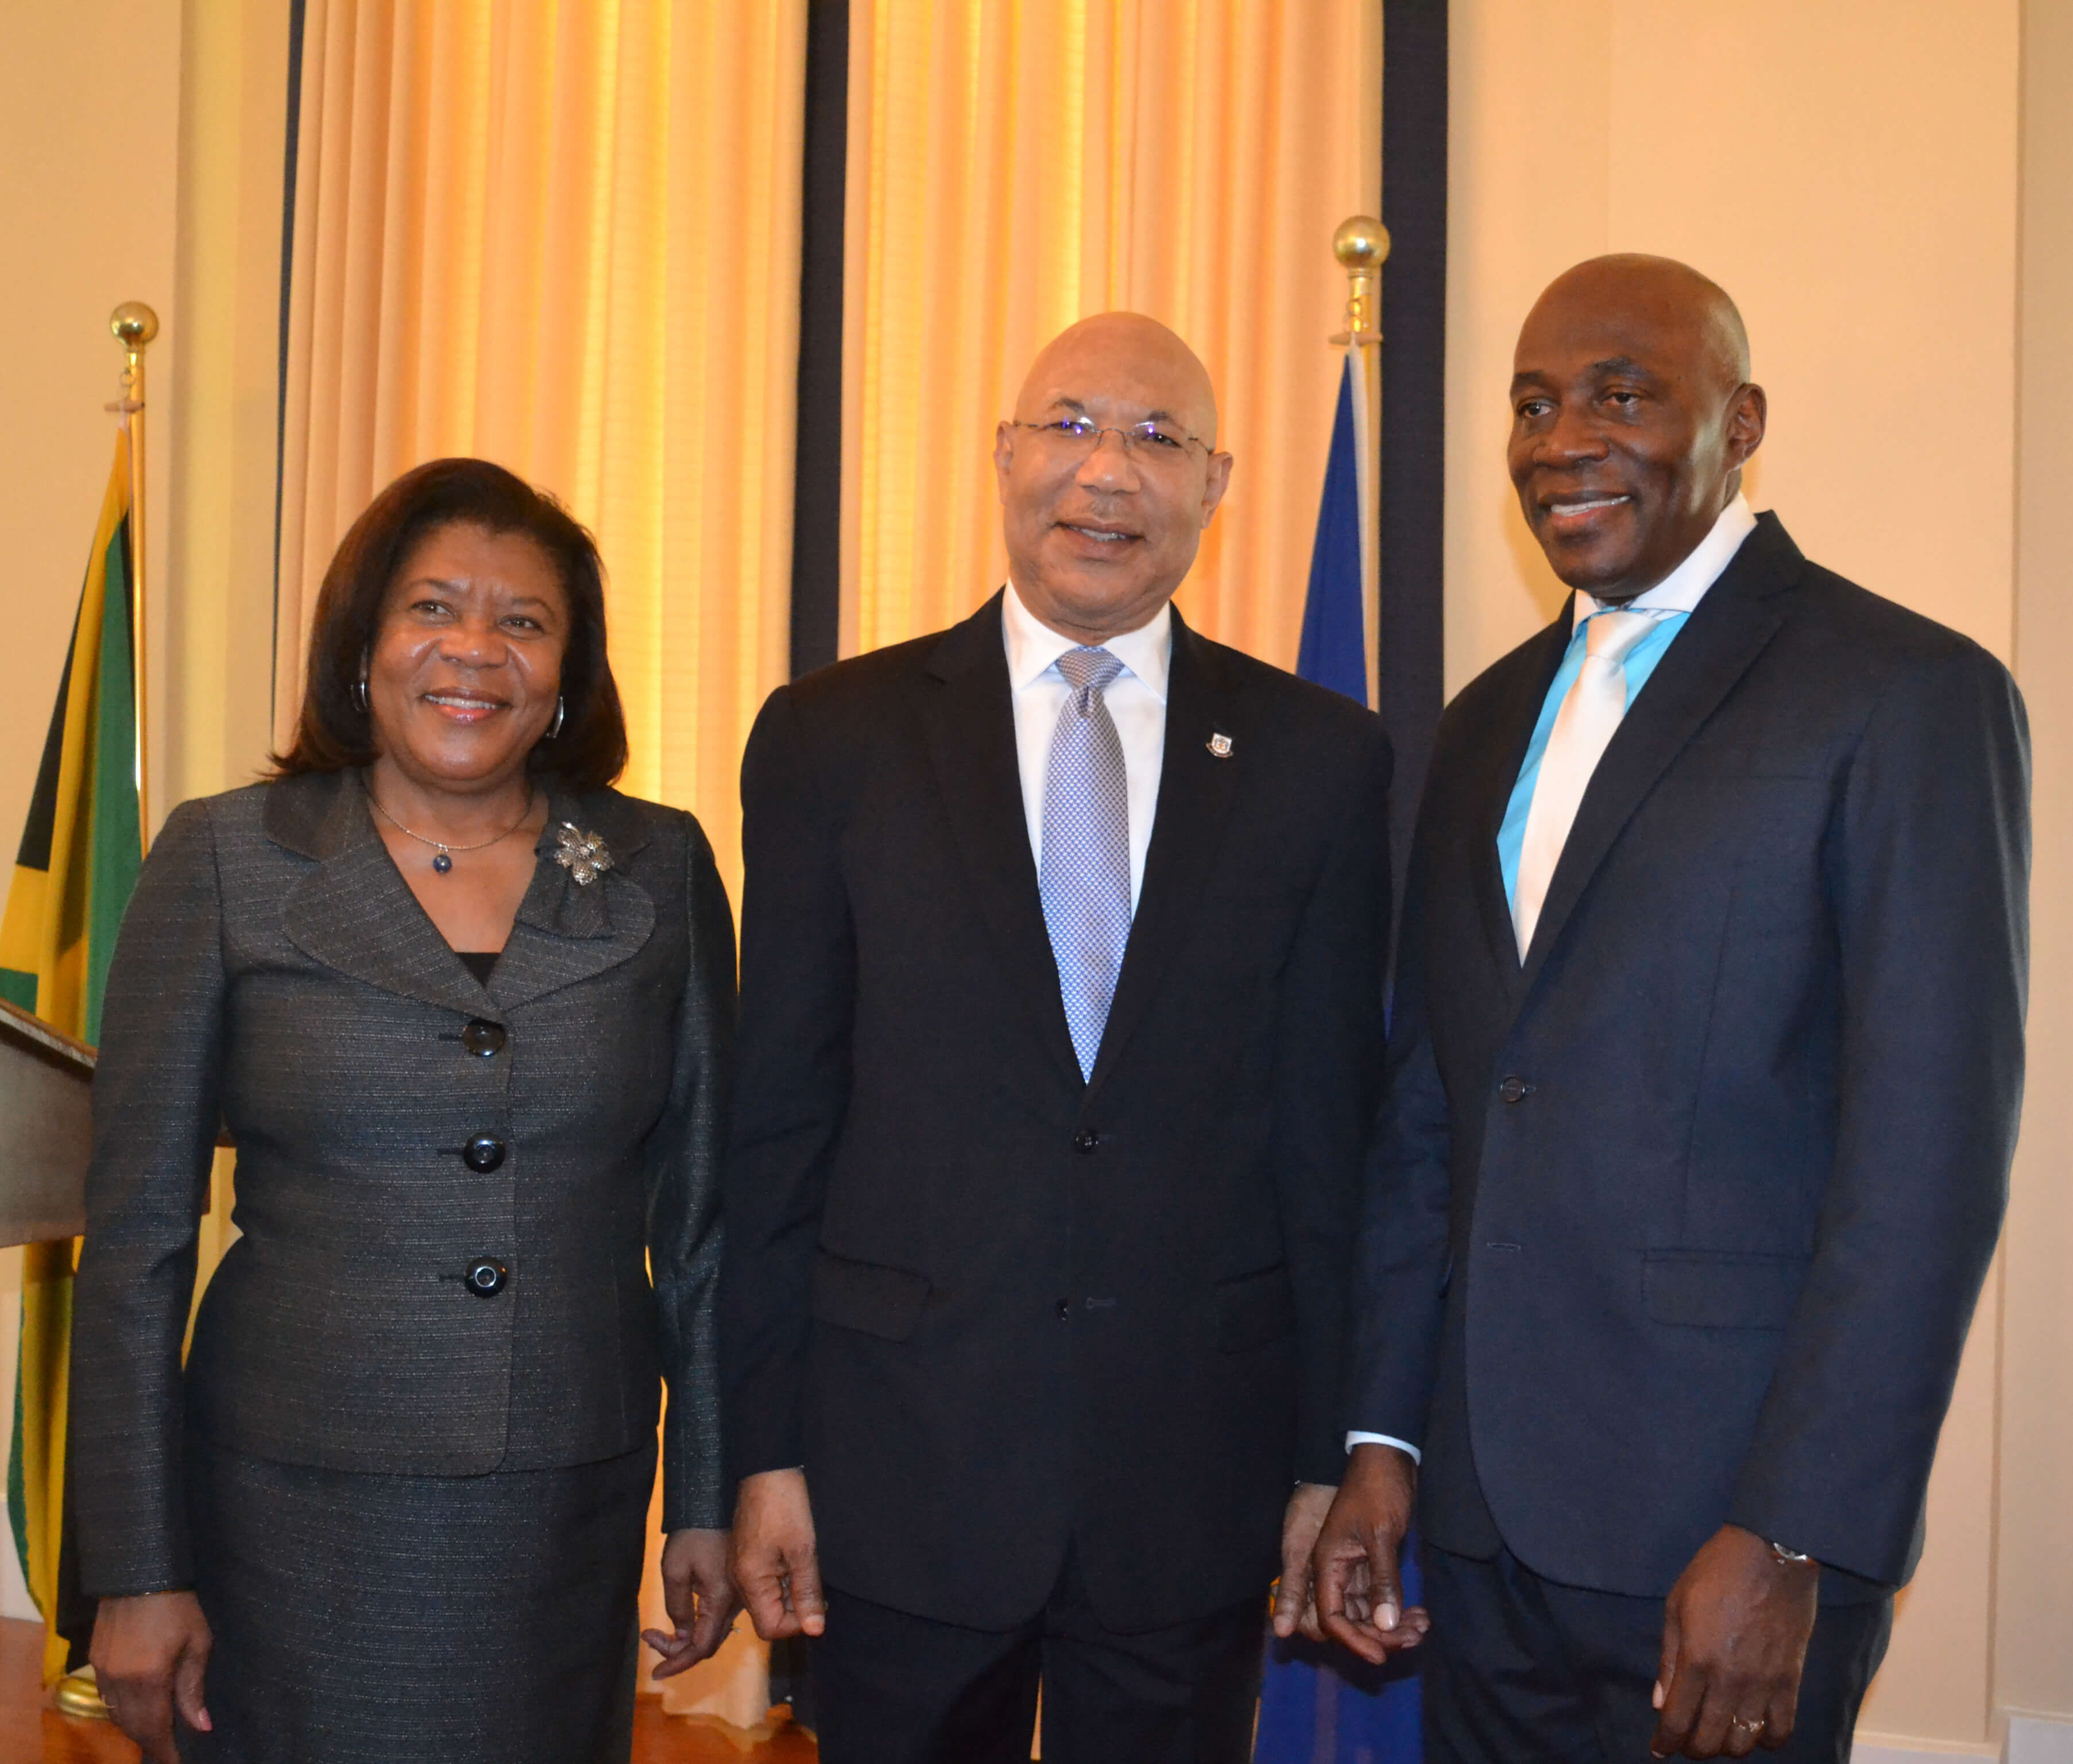 His Excellency The Governor-General (centre) shares lens with Her Honour Mrs. Justice Zaila McCalla (left), outgoing Chief Justice and the Honourable Mr. Justice Bryan Sykes (right) after his swearing-in ceremony to act as Chief Justice.